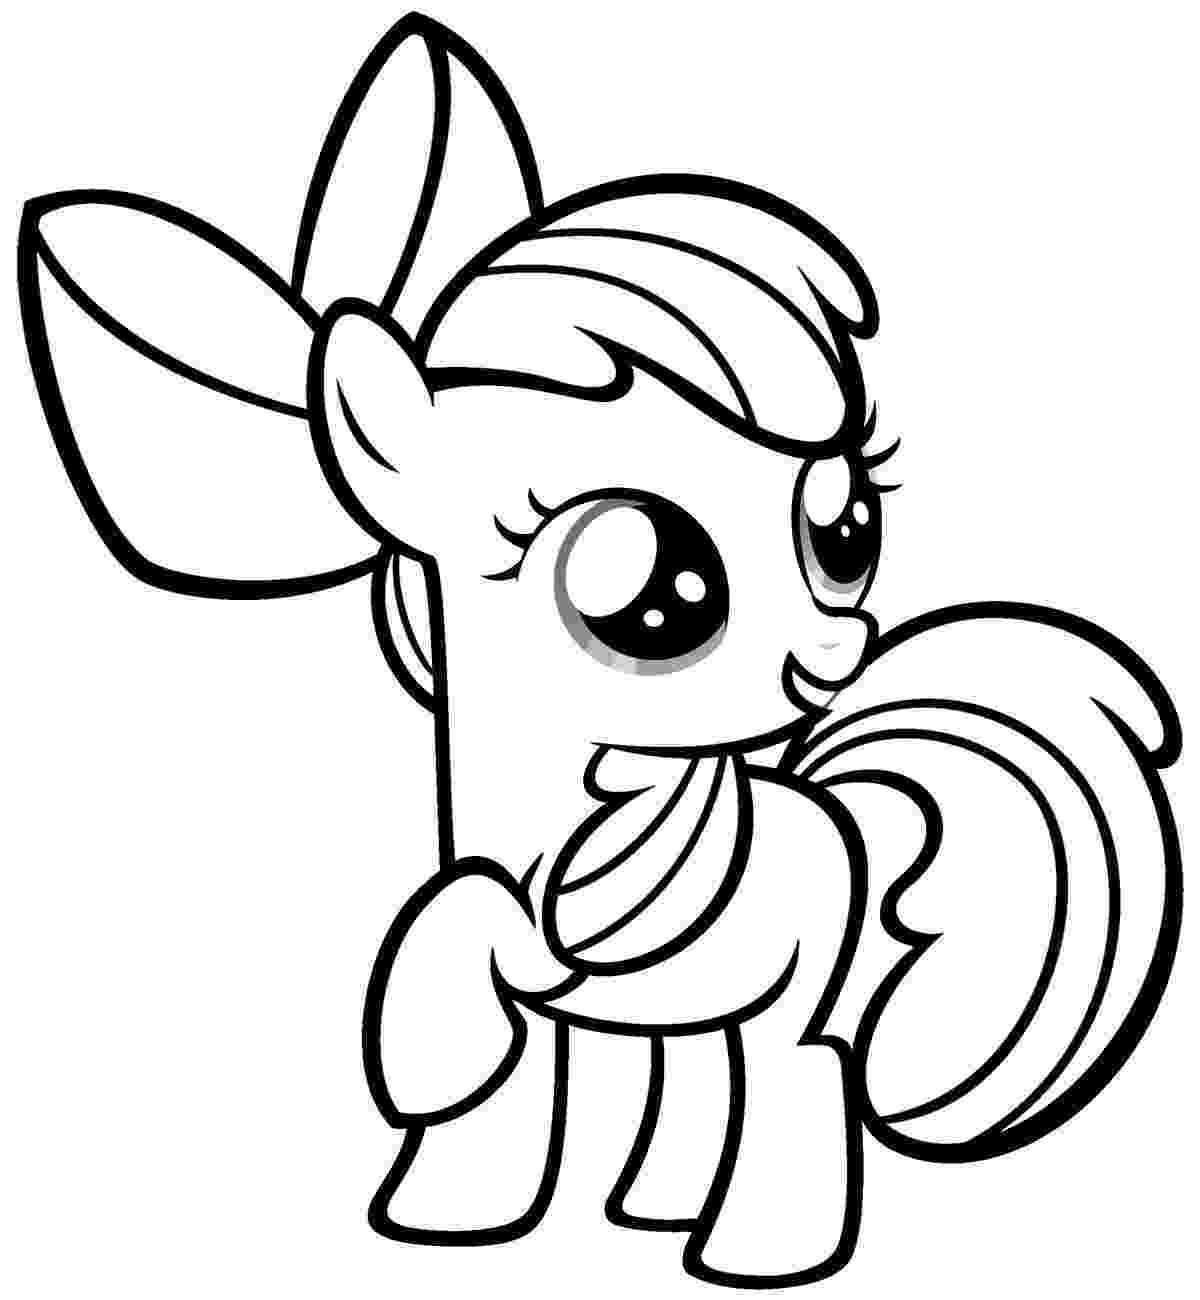 my little pony coloring pages free printable free printable my little pony coloring pages for kids free printable little pony pages my coloring